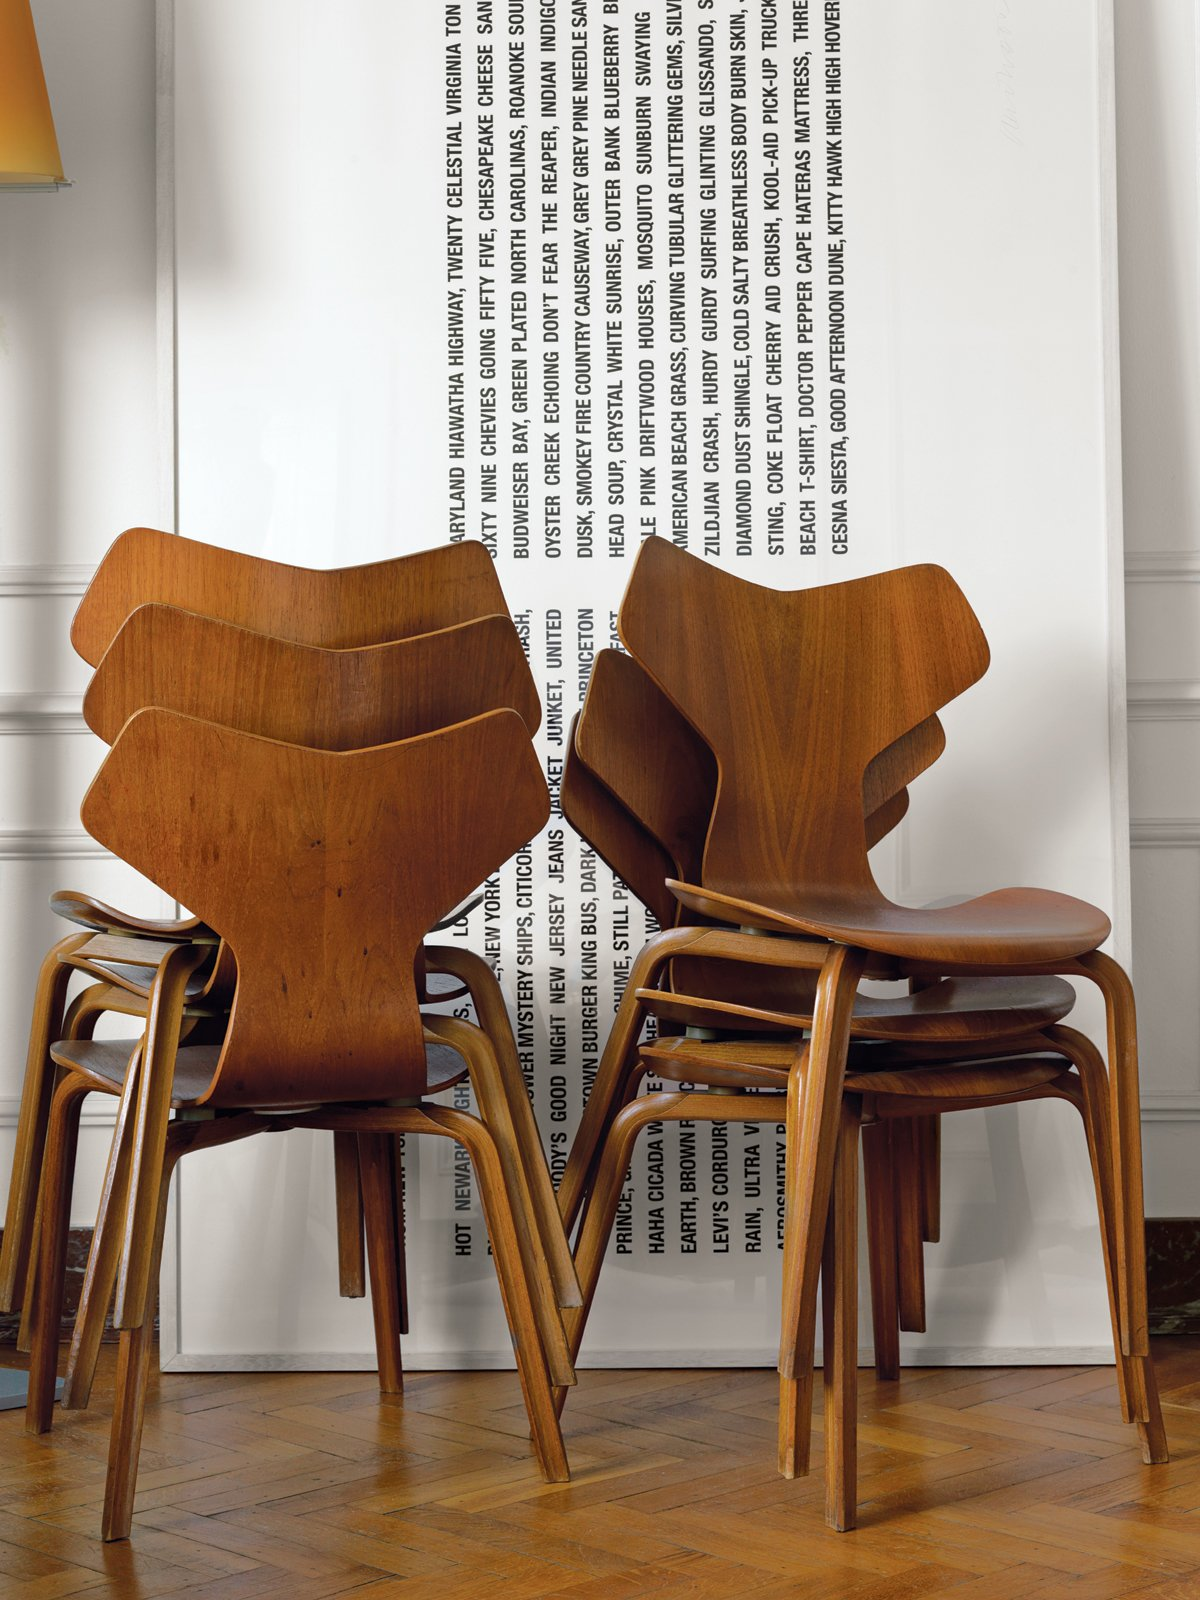 A stack of 1955 Grand Prix chairs by Arne Jacobsen rests besides a minimal art piece. Tagged: Living Room and Chair.  100+ Best Modern Seating Designs by Dwell from A Neoclassical Gallery Home in Belgium